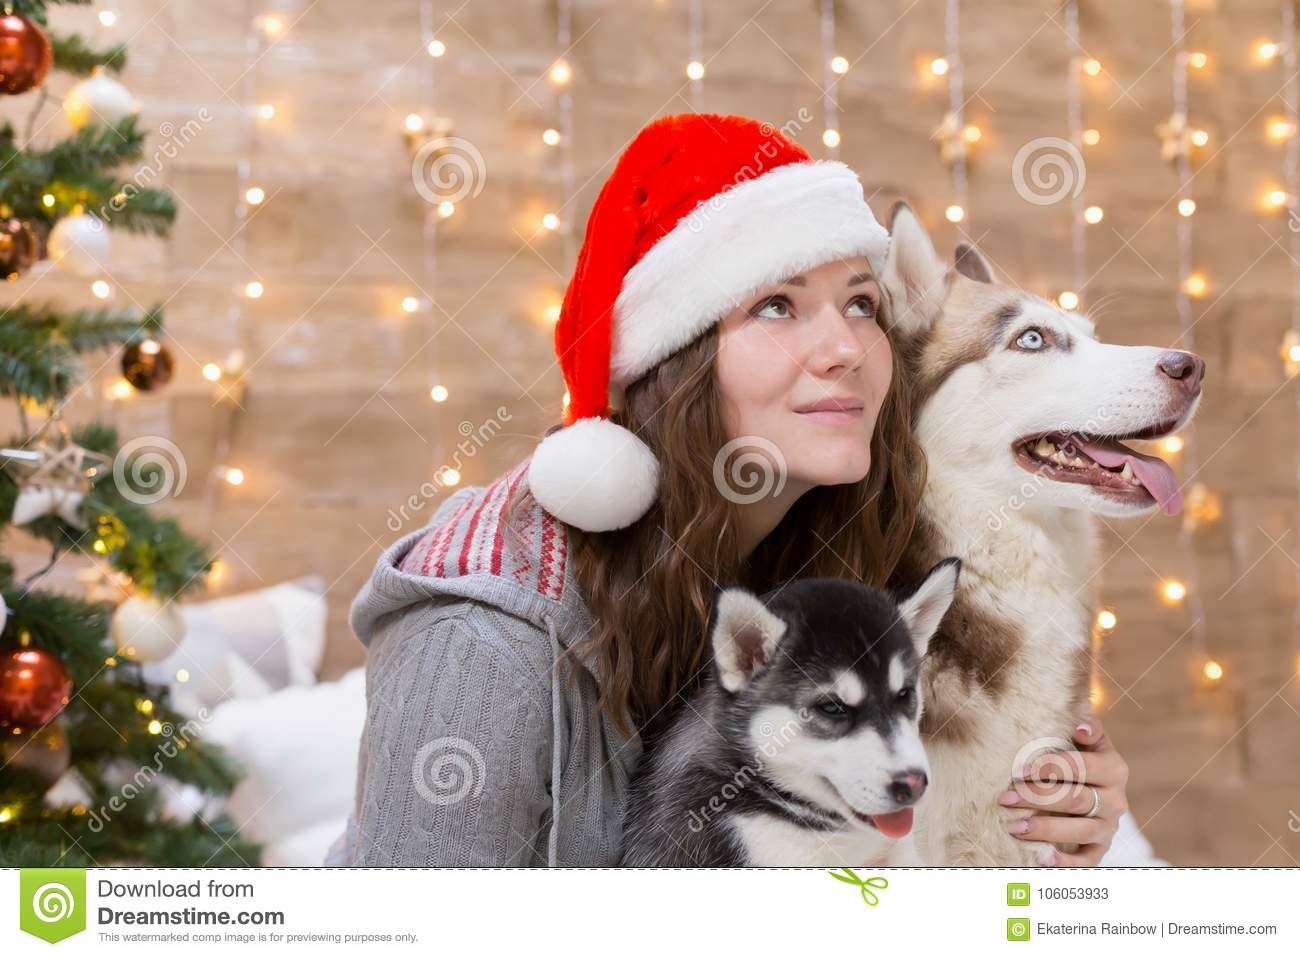 223cb53e7f48d ... amazing background Christmas tree lights. New Year holiday card  calendar. Winter family home. Beautiful animals life. Couple friends Santa  Claus.